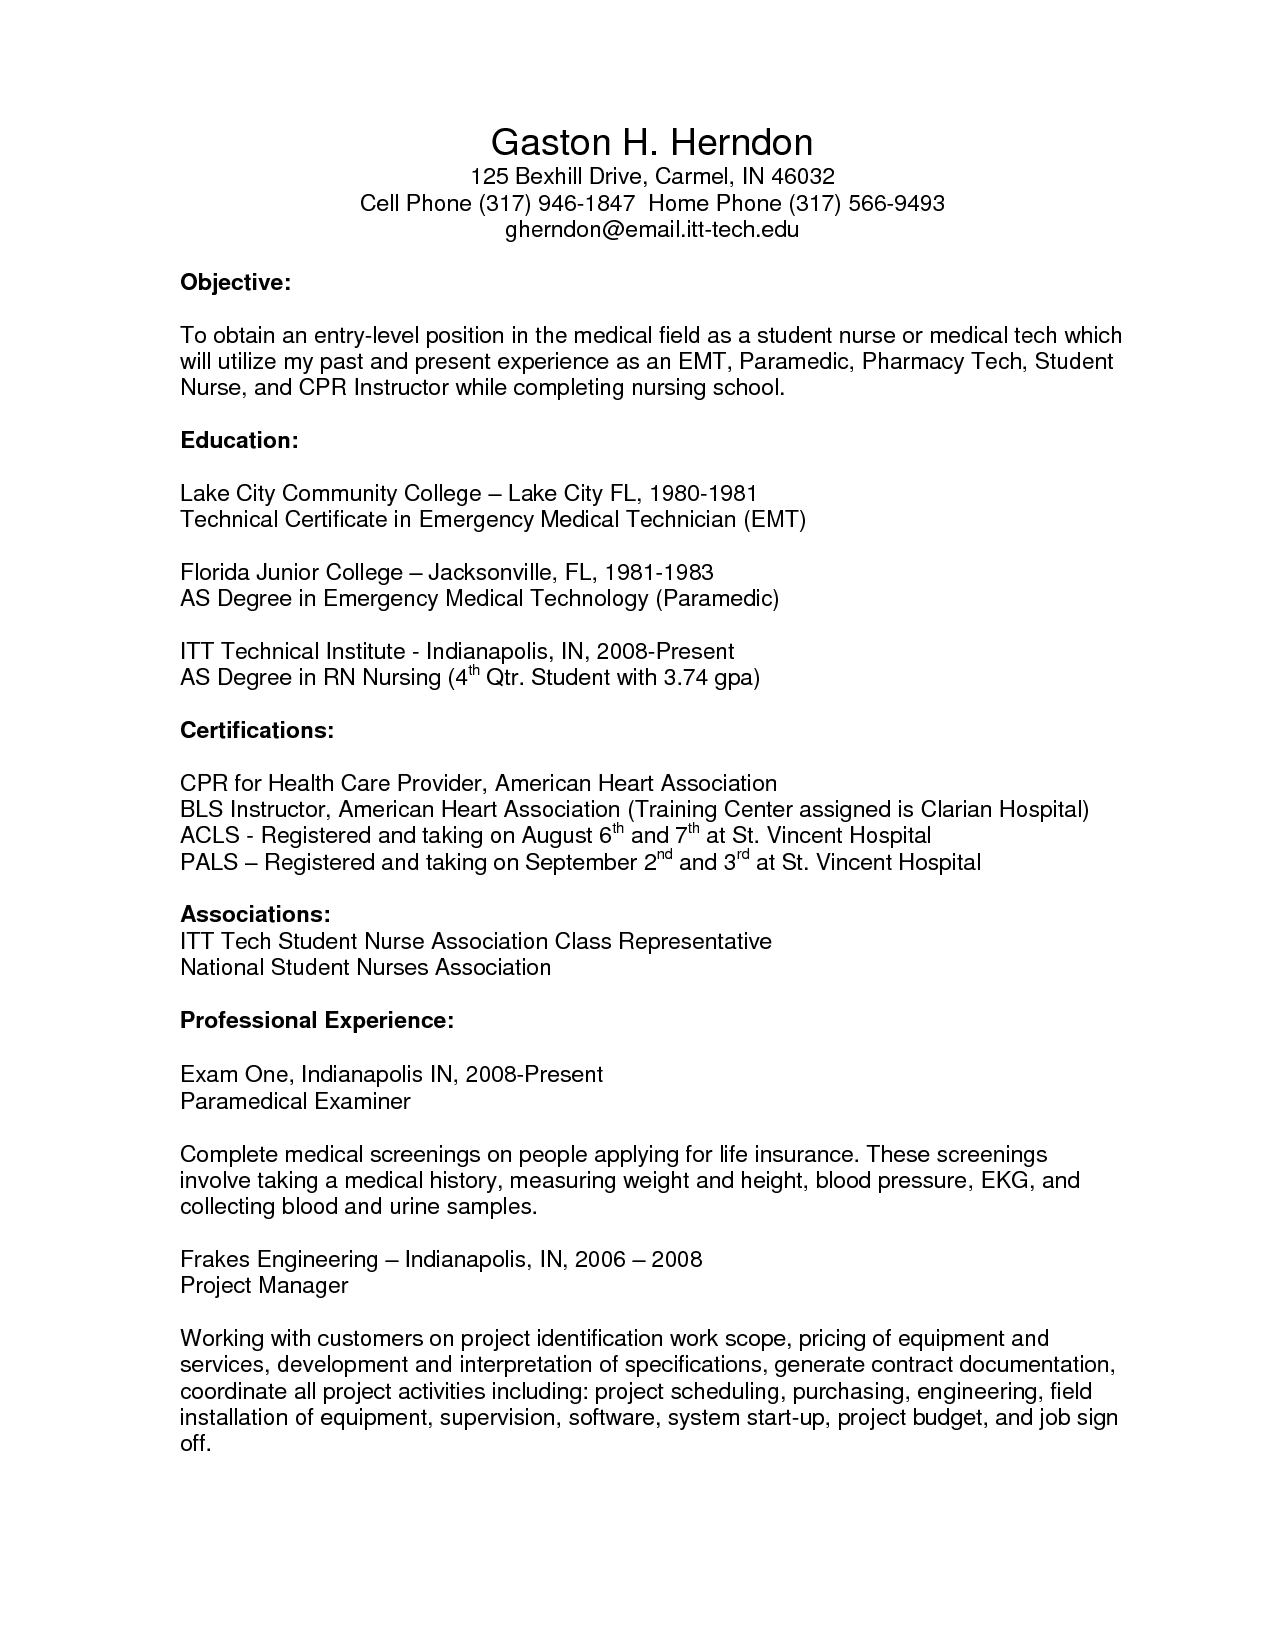 Resume Profile Examples Resume For Triage Nurse  Httpwwwresumecareerresumefor